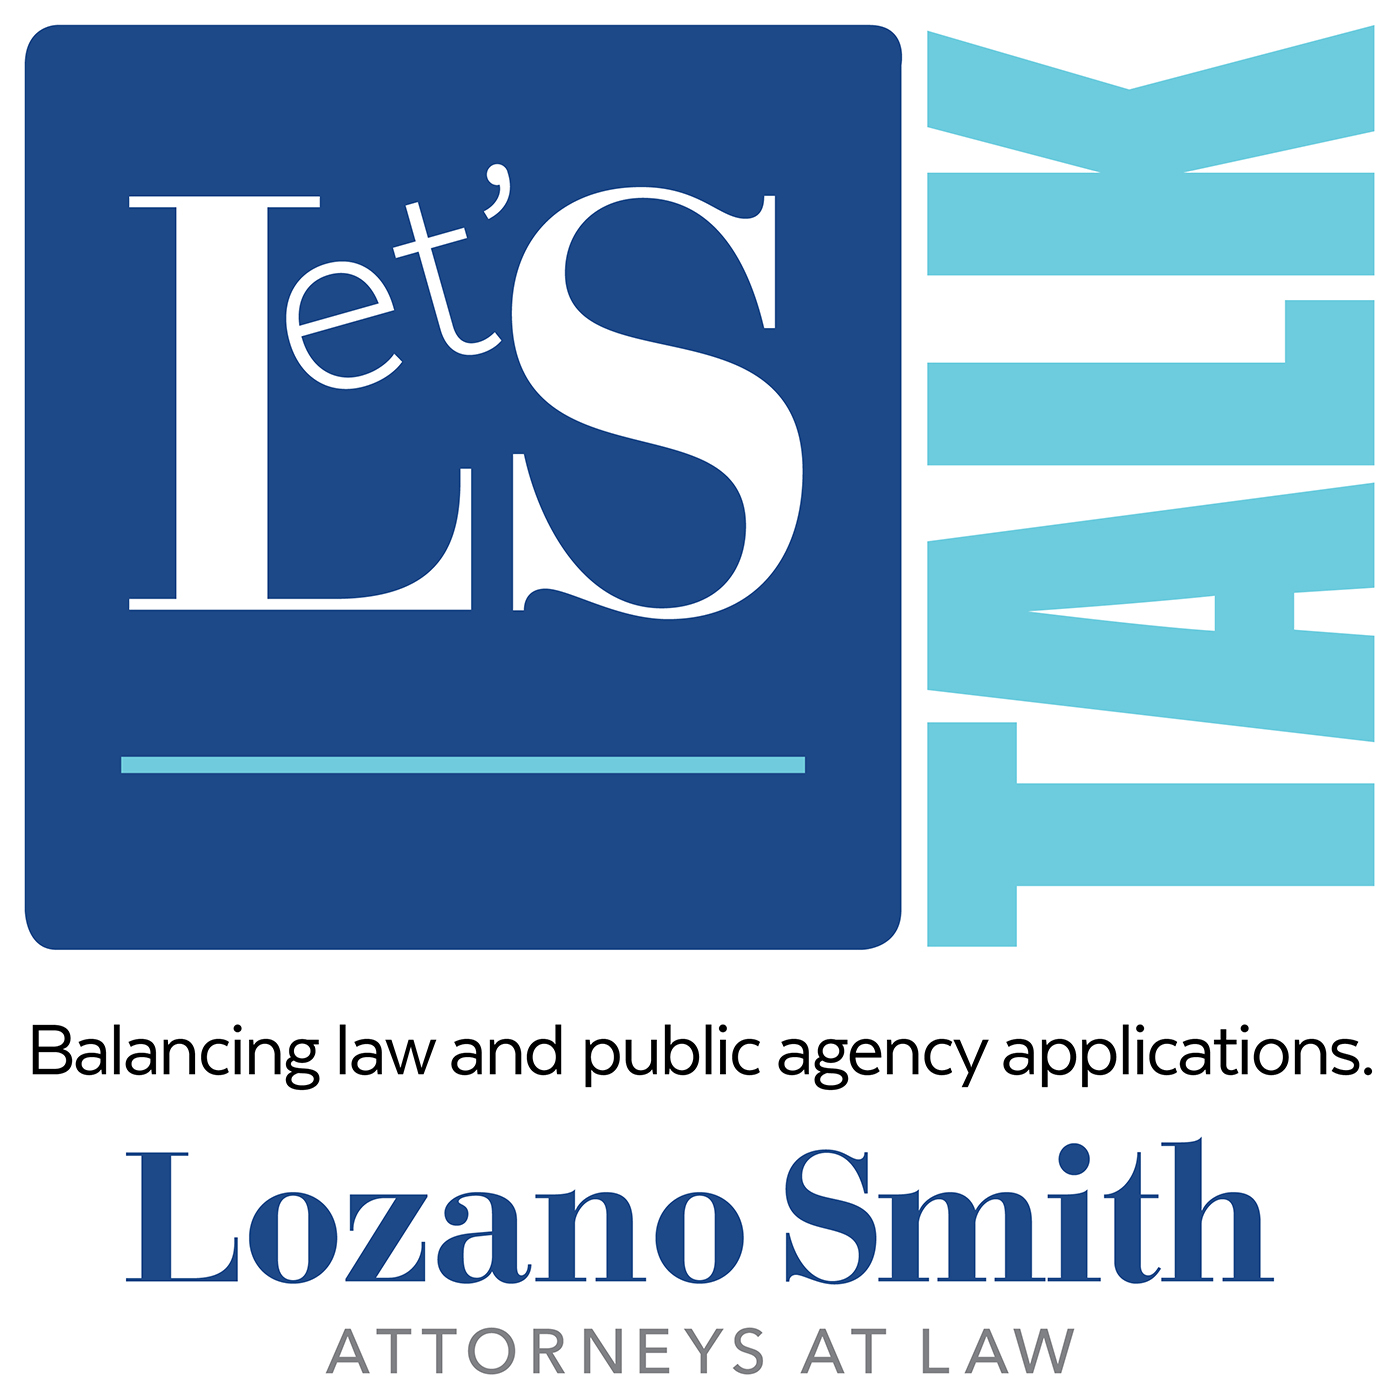 Let's Talk - Lozano Smith Podcast